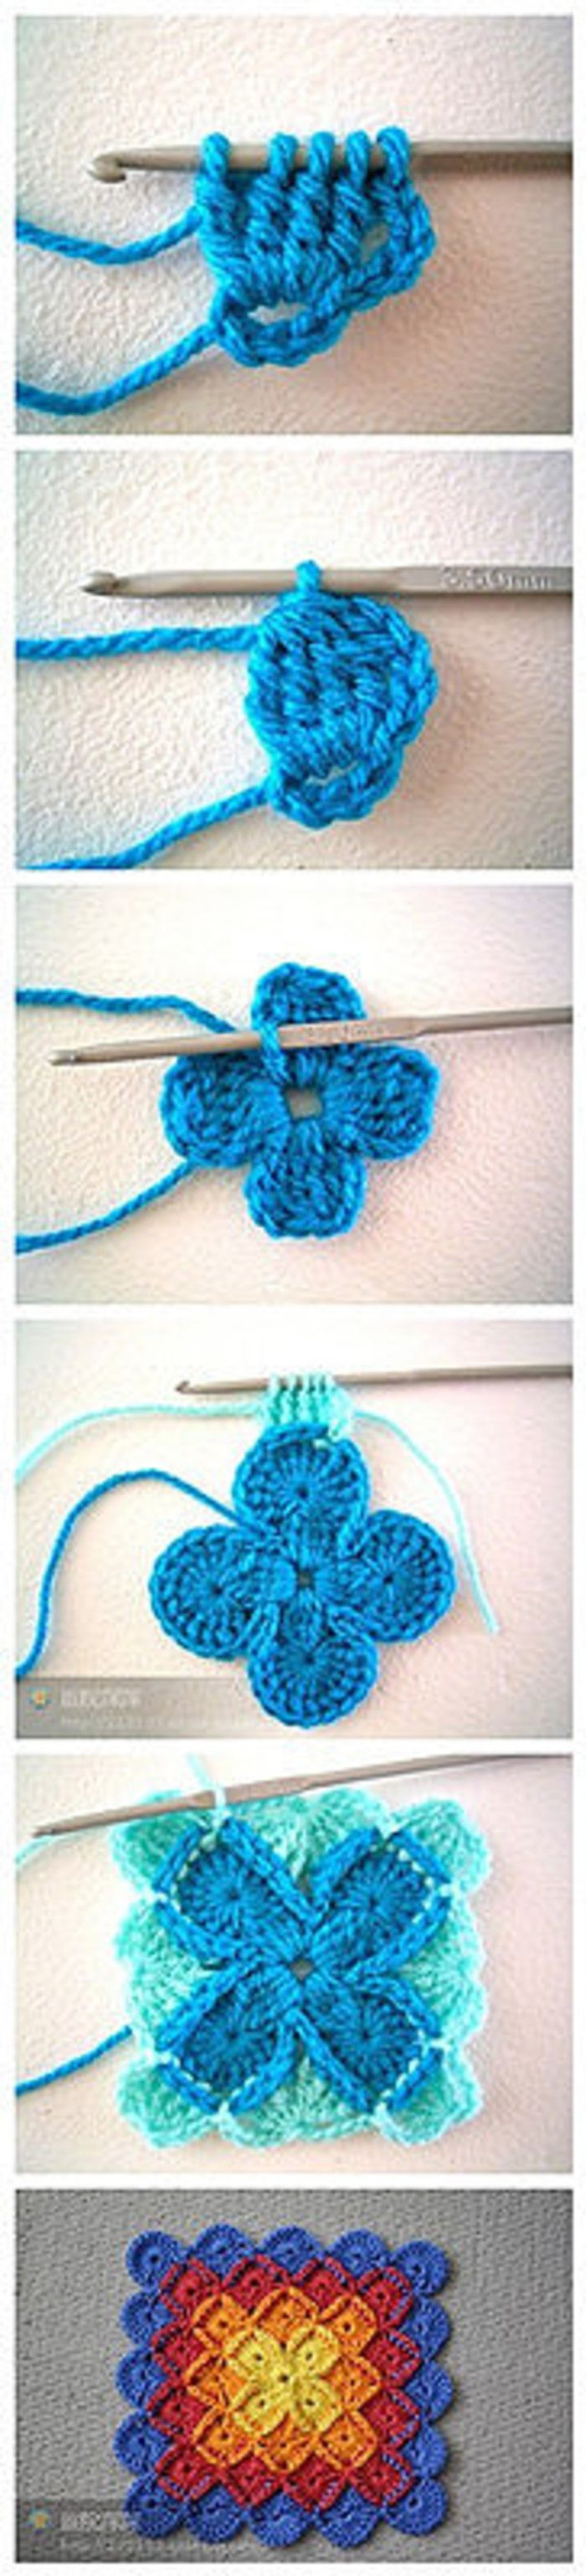 16 Free Crochet Flower Patterns - thesprucecrafts.com